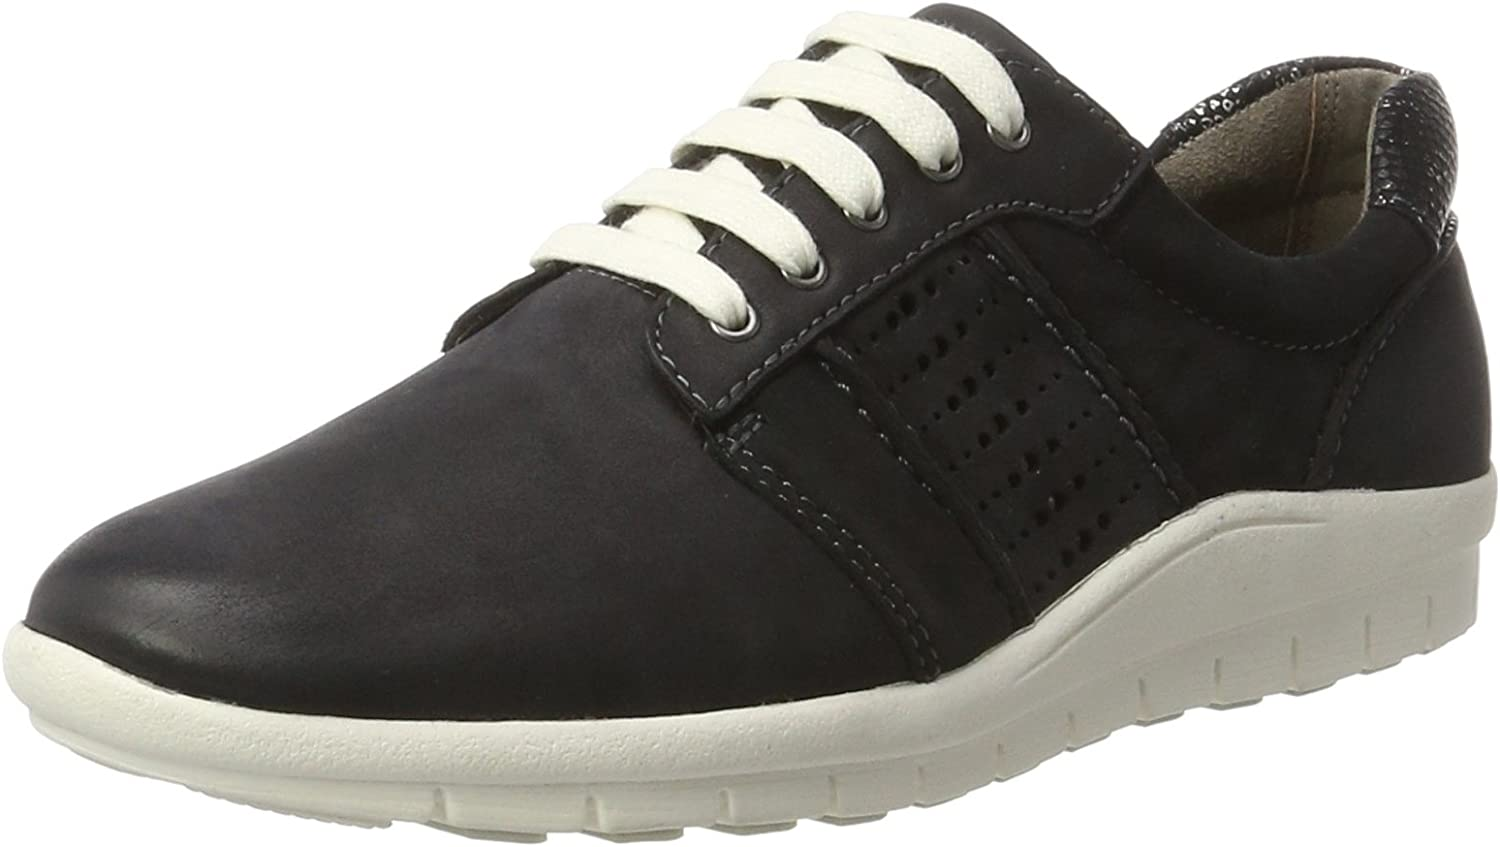 JANA 23714 Women's Low-Top Sneakers